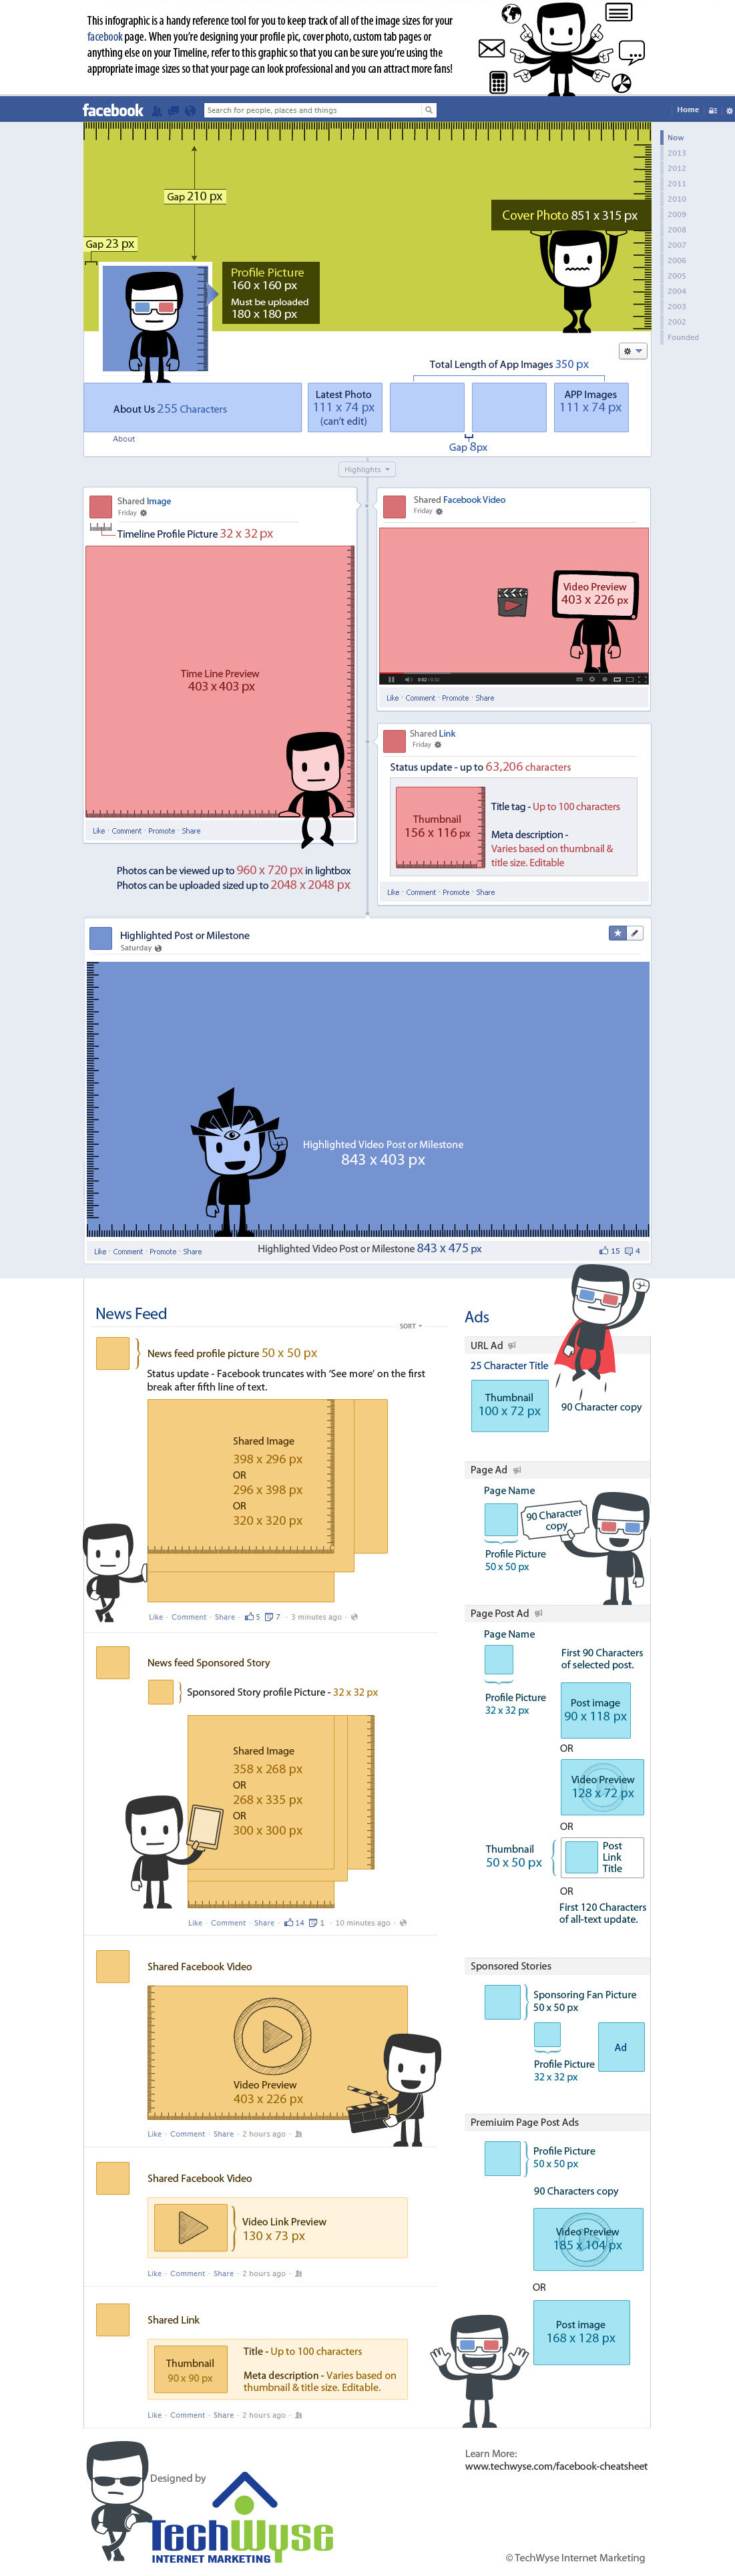 facebook-timeline-page-sizes-and-dimensions-cheat-sheet2